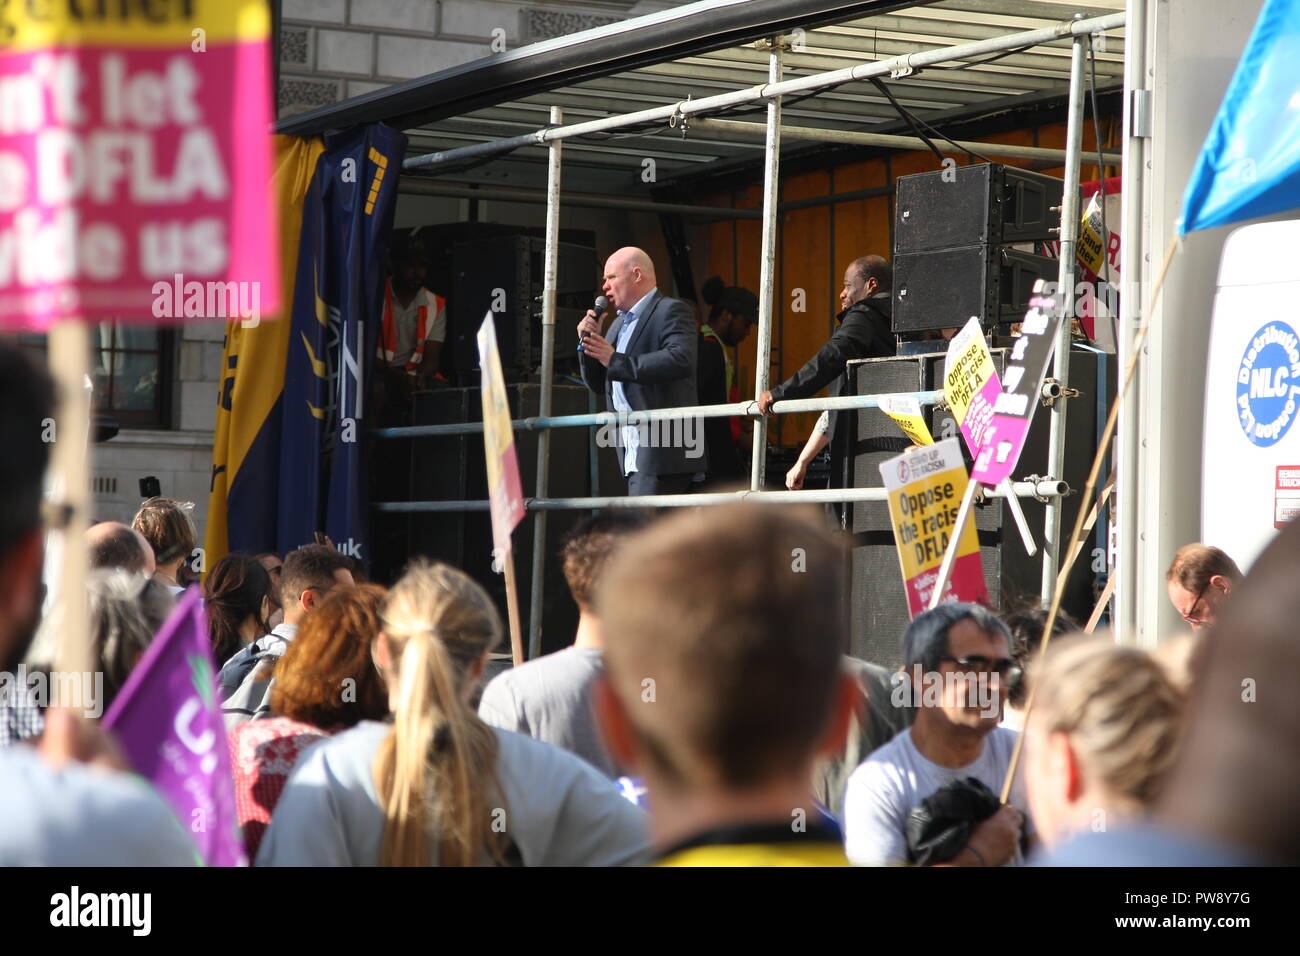 London, UK. 13th October, 2018. A counter protest organised by campaign group Stand Up To Racism  marches and rallies  in Whitehall. The purpose of the protest was to prevent the far right group DFLA (Democratic Football Lads Alliance) from marching through Whitehall and past Parliament.Stee Hedley, Assistant General Secretary of the RMT union addresses the crowd. Roland Ravenhill/Alamy Live News - Stock Image